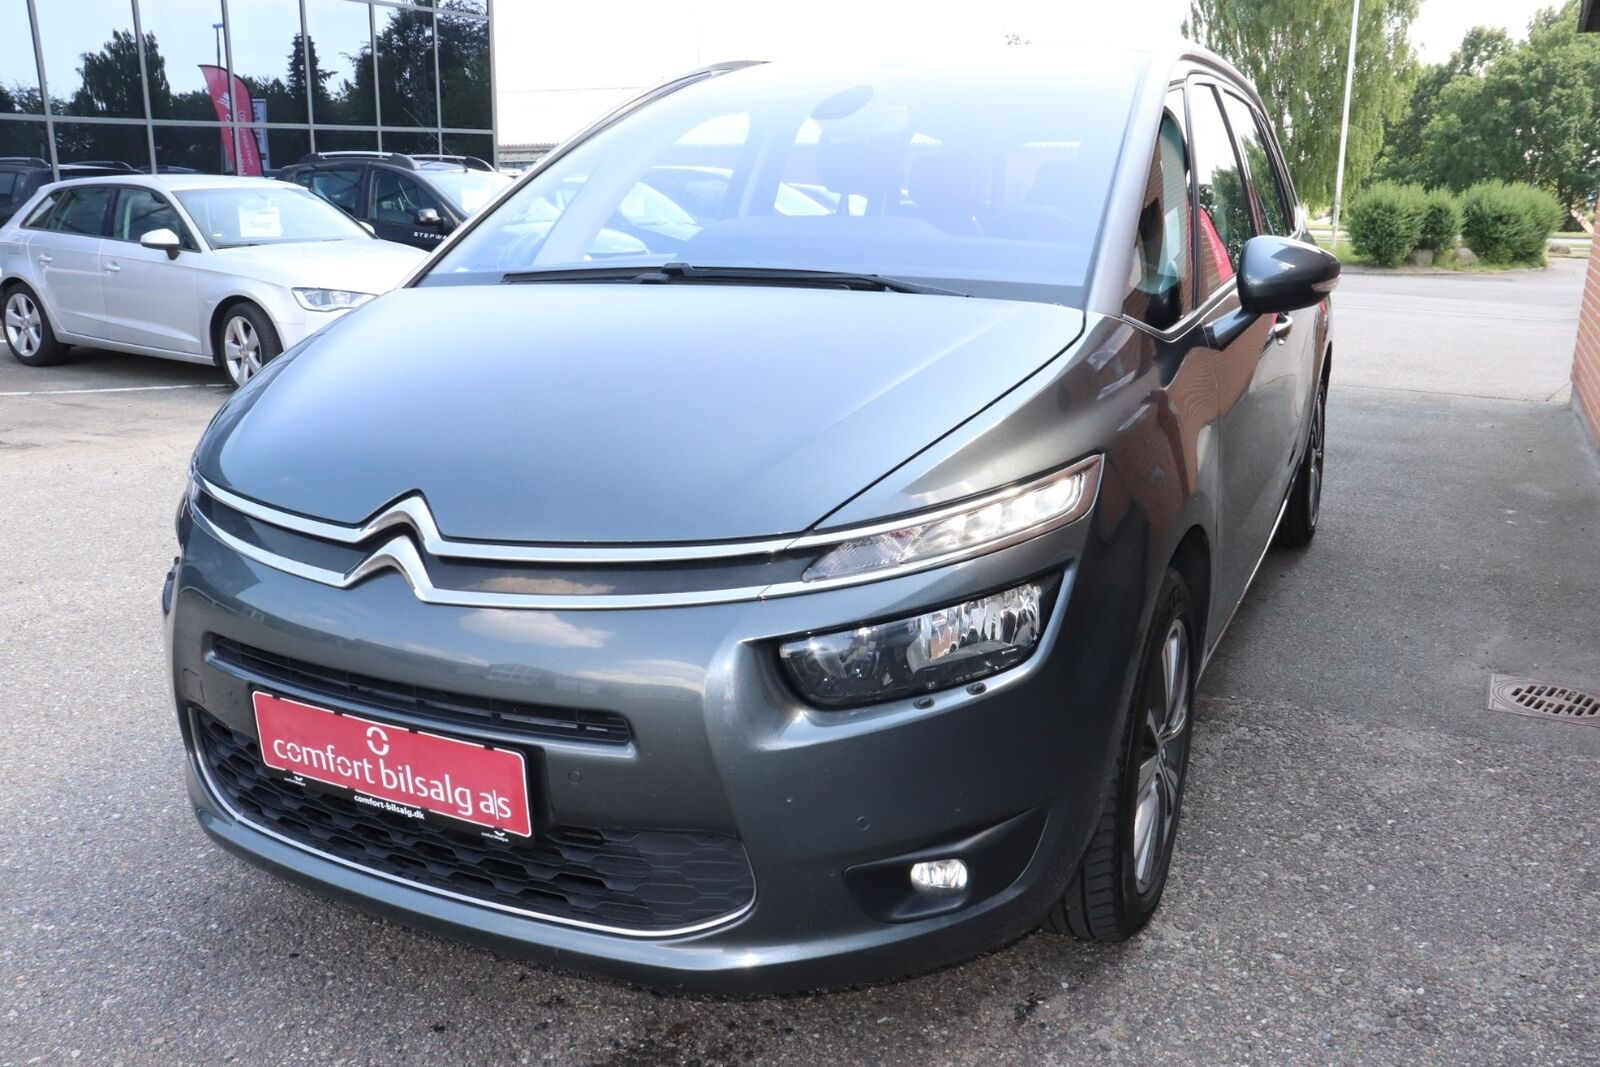 Citroën Grand C4 Picasso 2,0 BlueHDi 150 Intensive EAT6 5d - 209.900 kr.